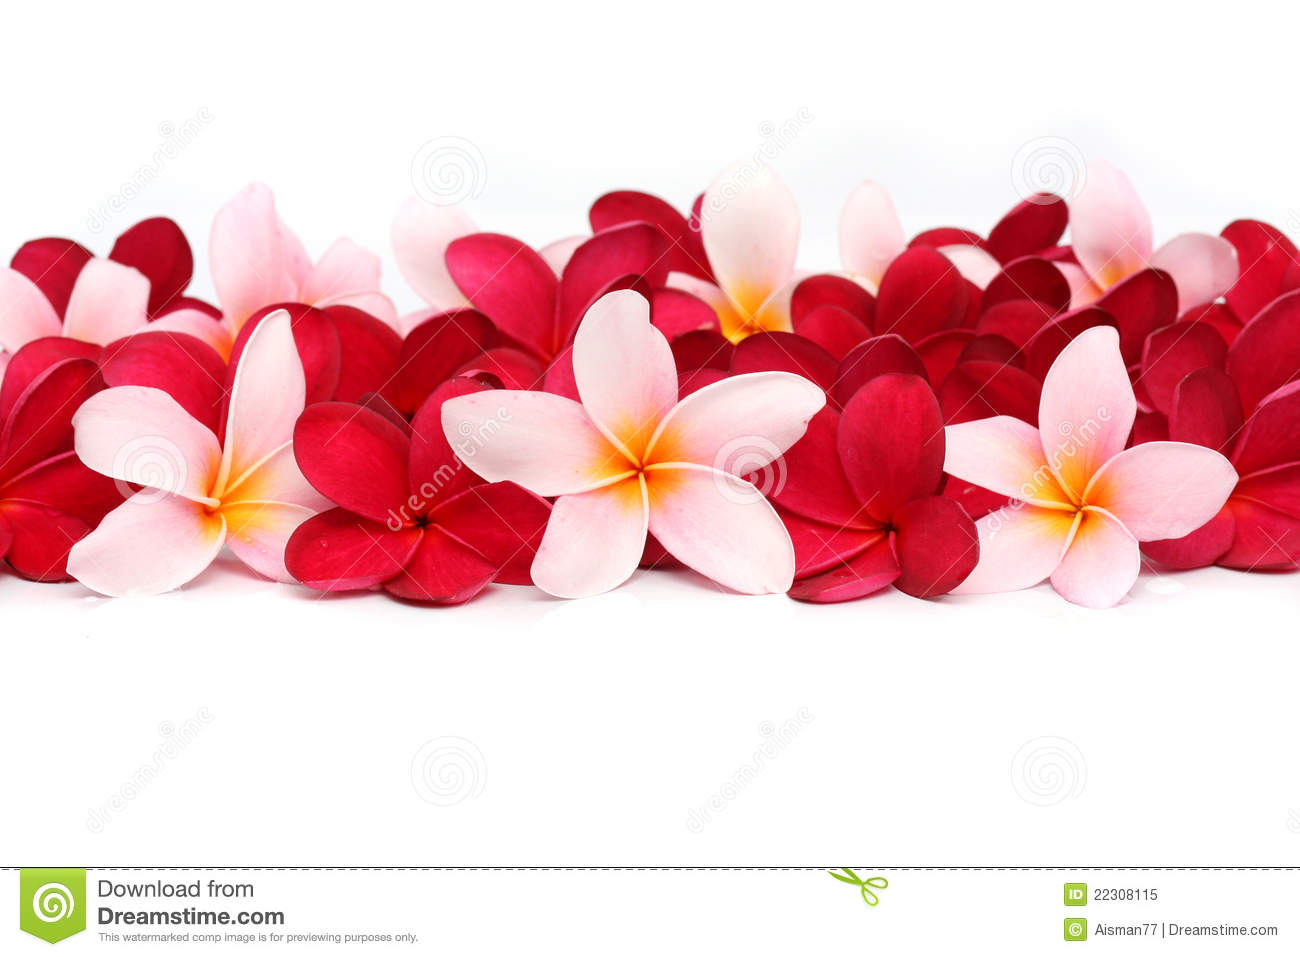 Pink And Red Frangipani Plumeria Flower Stock Image - Image of bloom ...